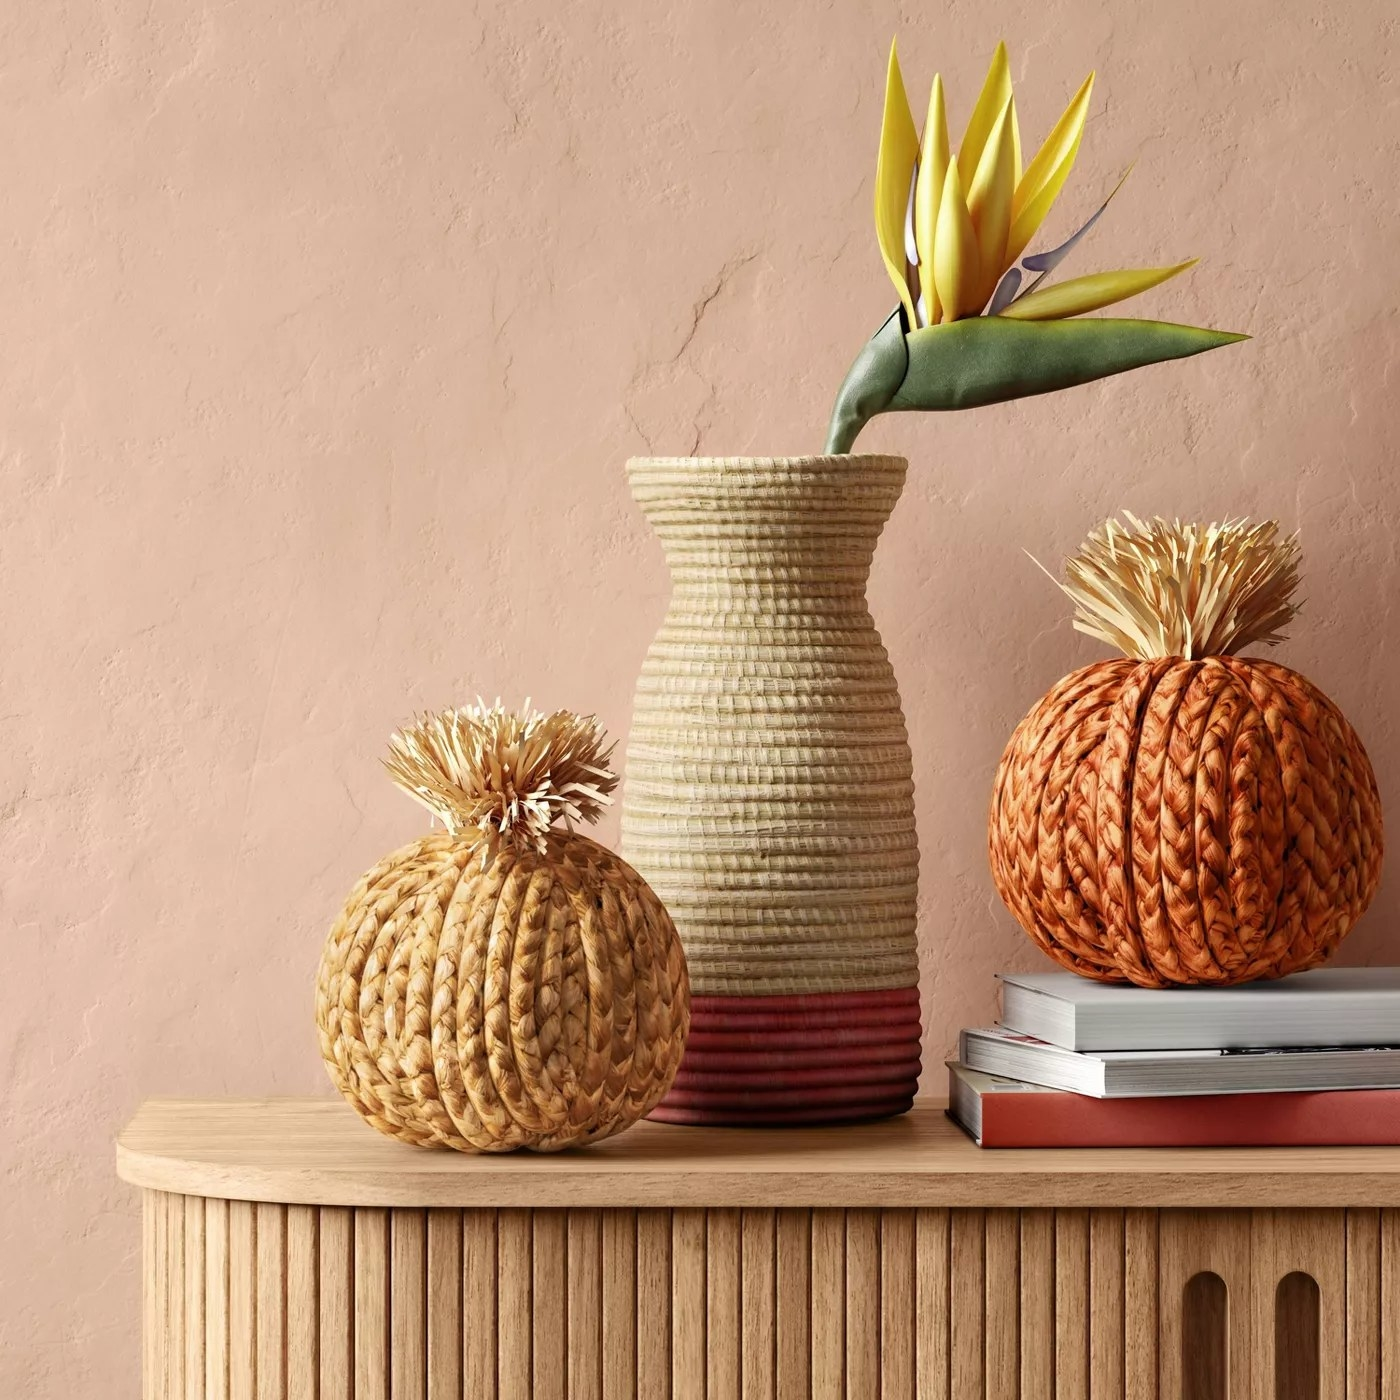 A natural-colored pumpkin and an orange pumpkin on an entryway table